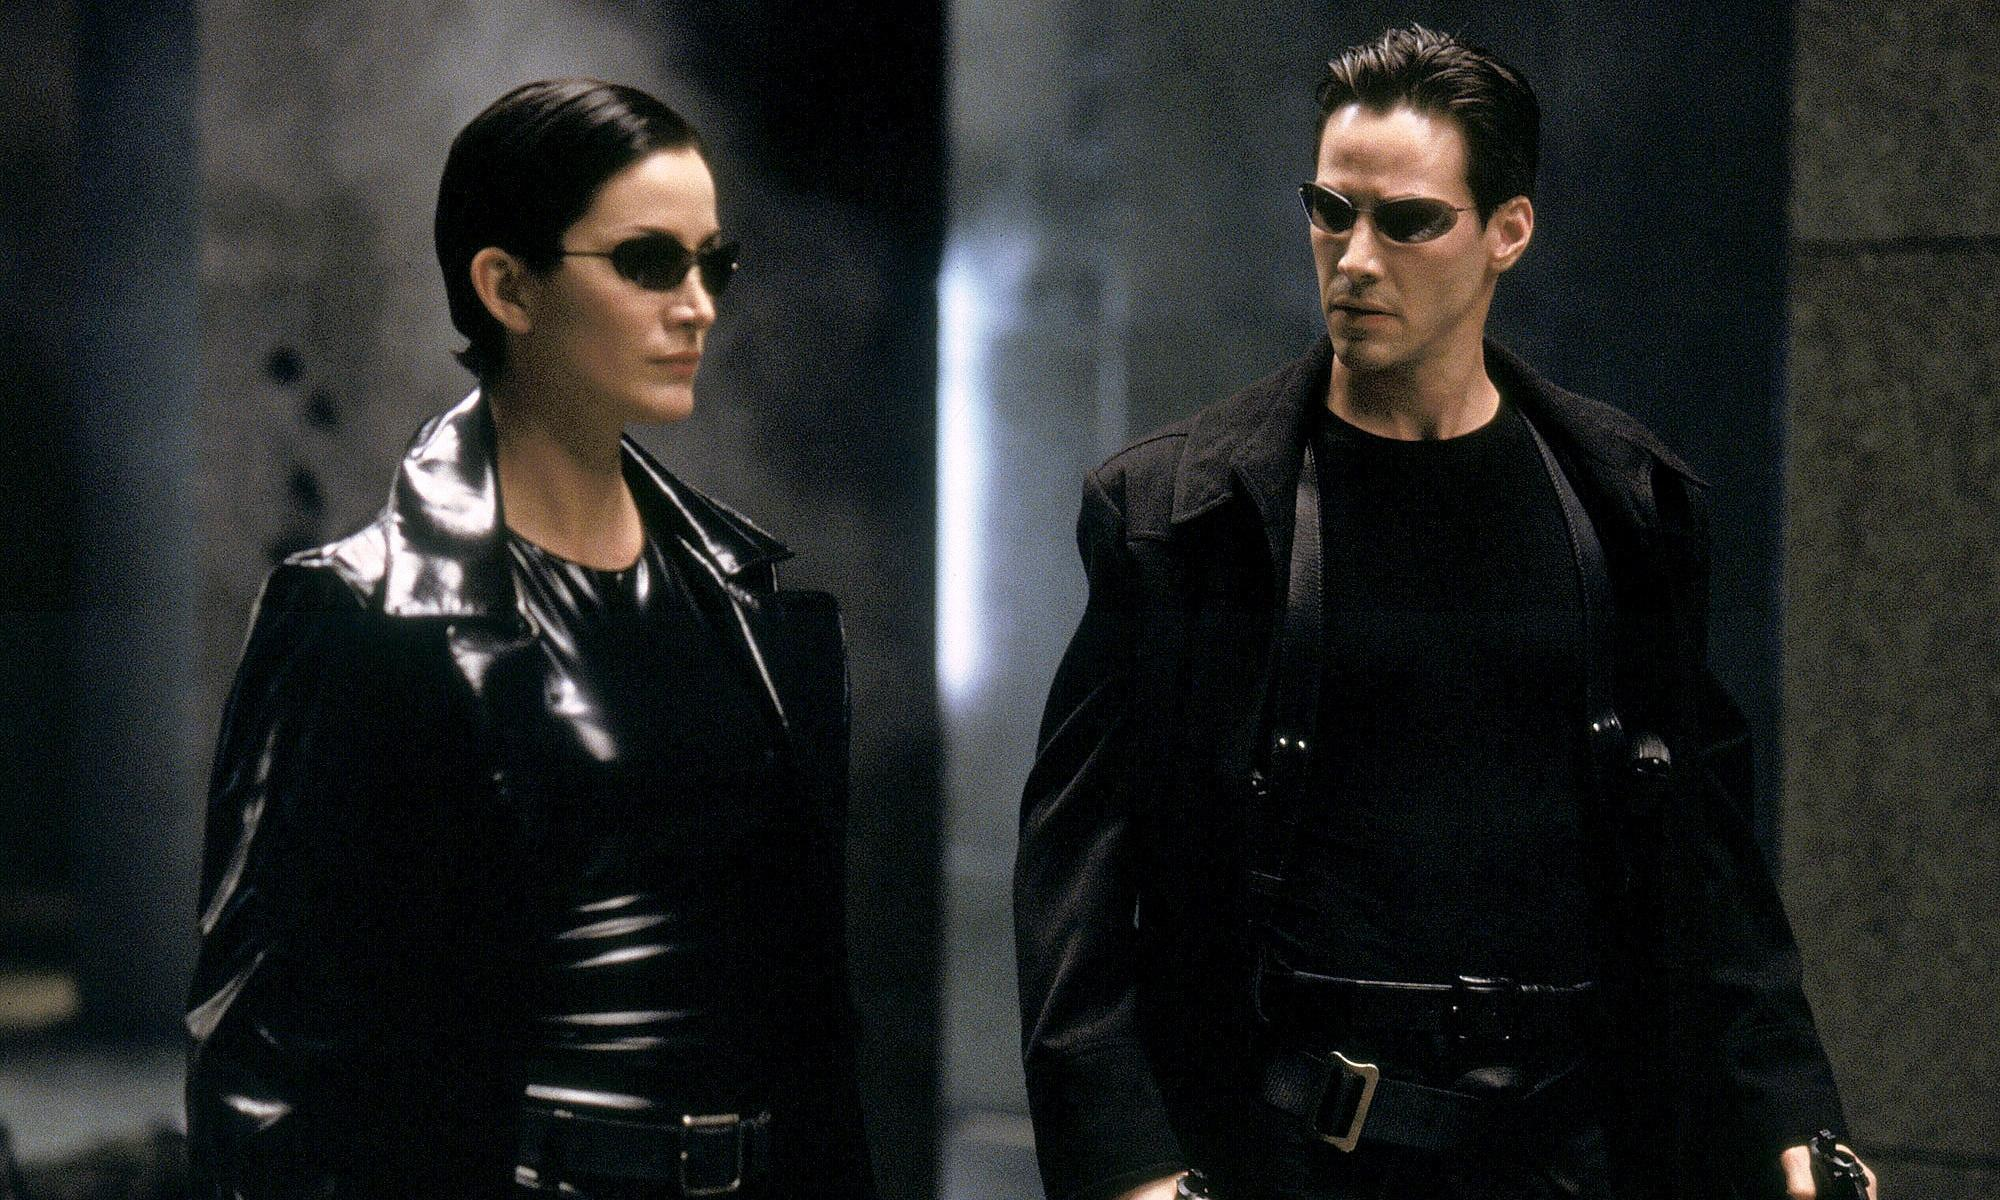 The Matrix at 20: how the sci-fi gamechanger remains influential